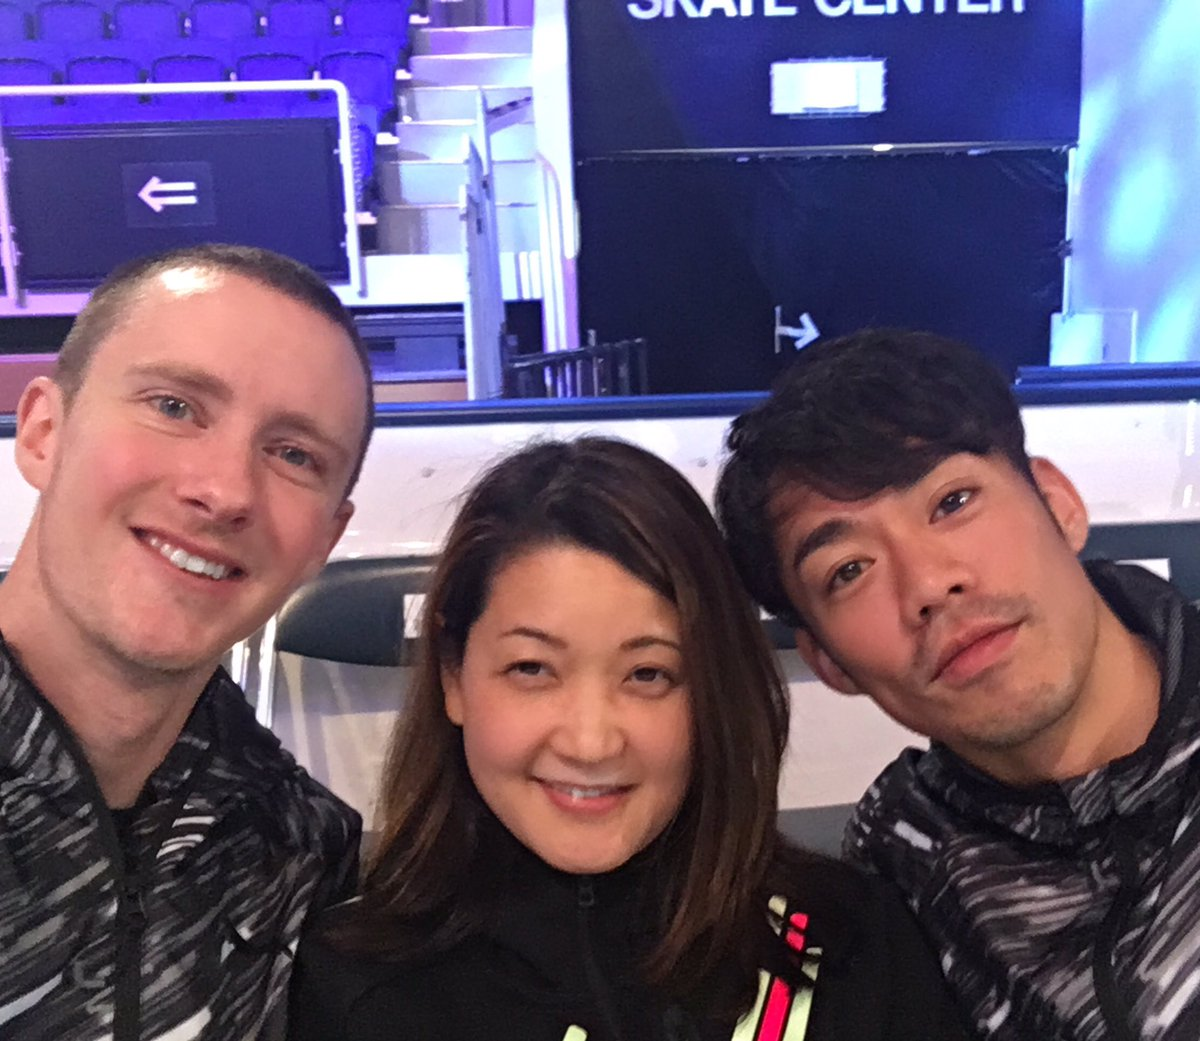 Good lighting, good friends, good #FriendsOnIce! https://t.co/lIwmt1Y0ZB